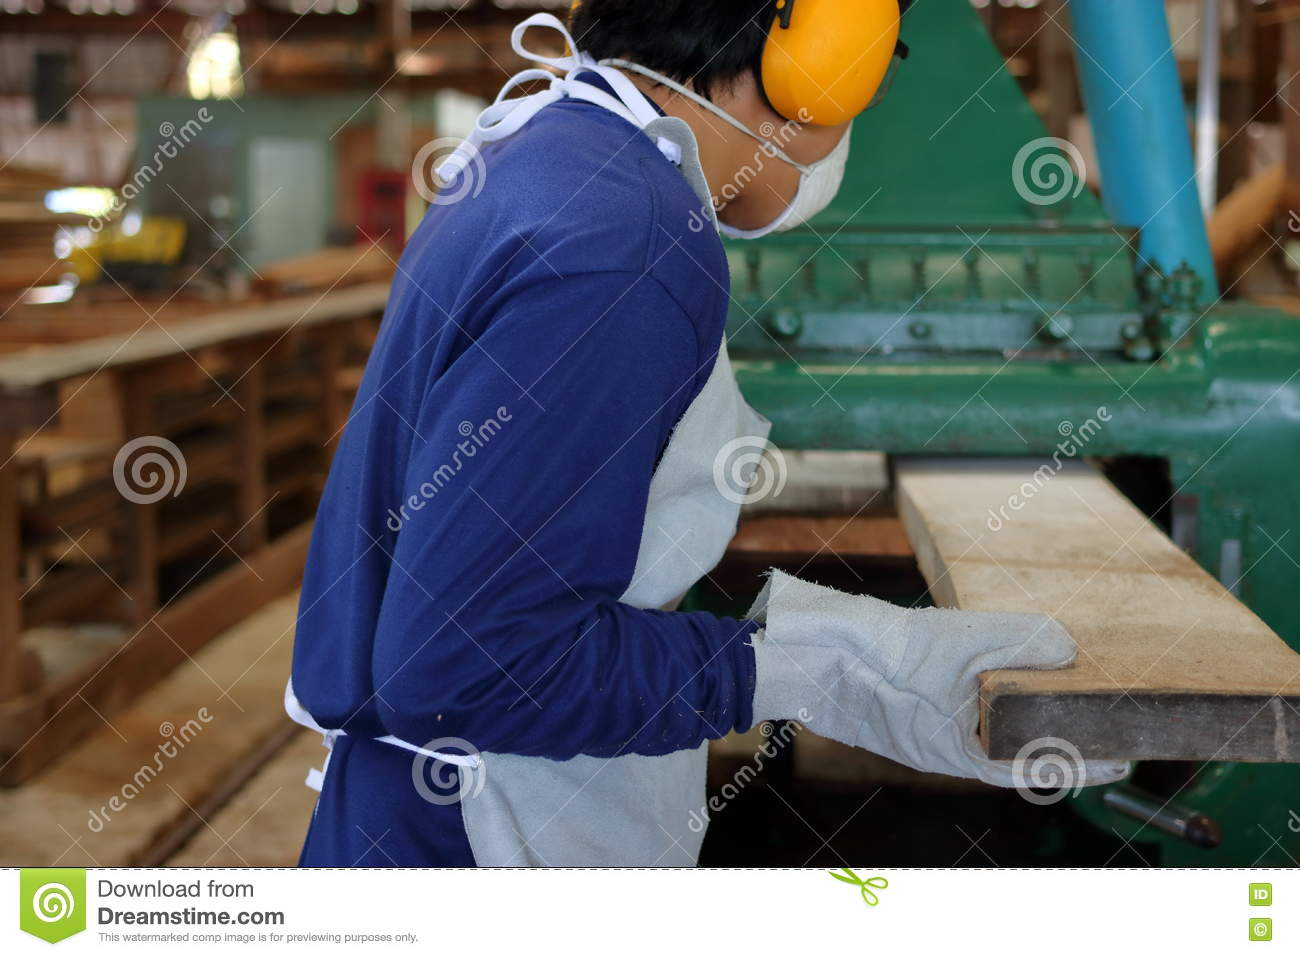 Worker is working with planing of wood machine.He is wearing safety equipment in factory. Rear view